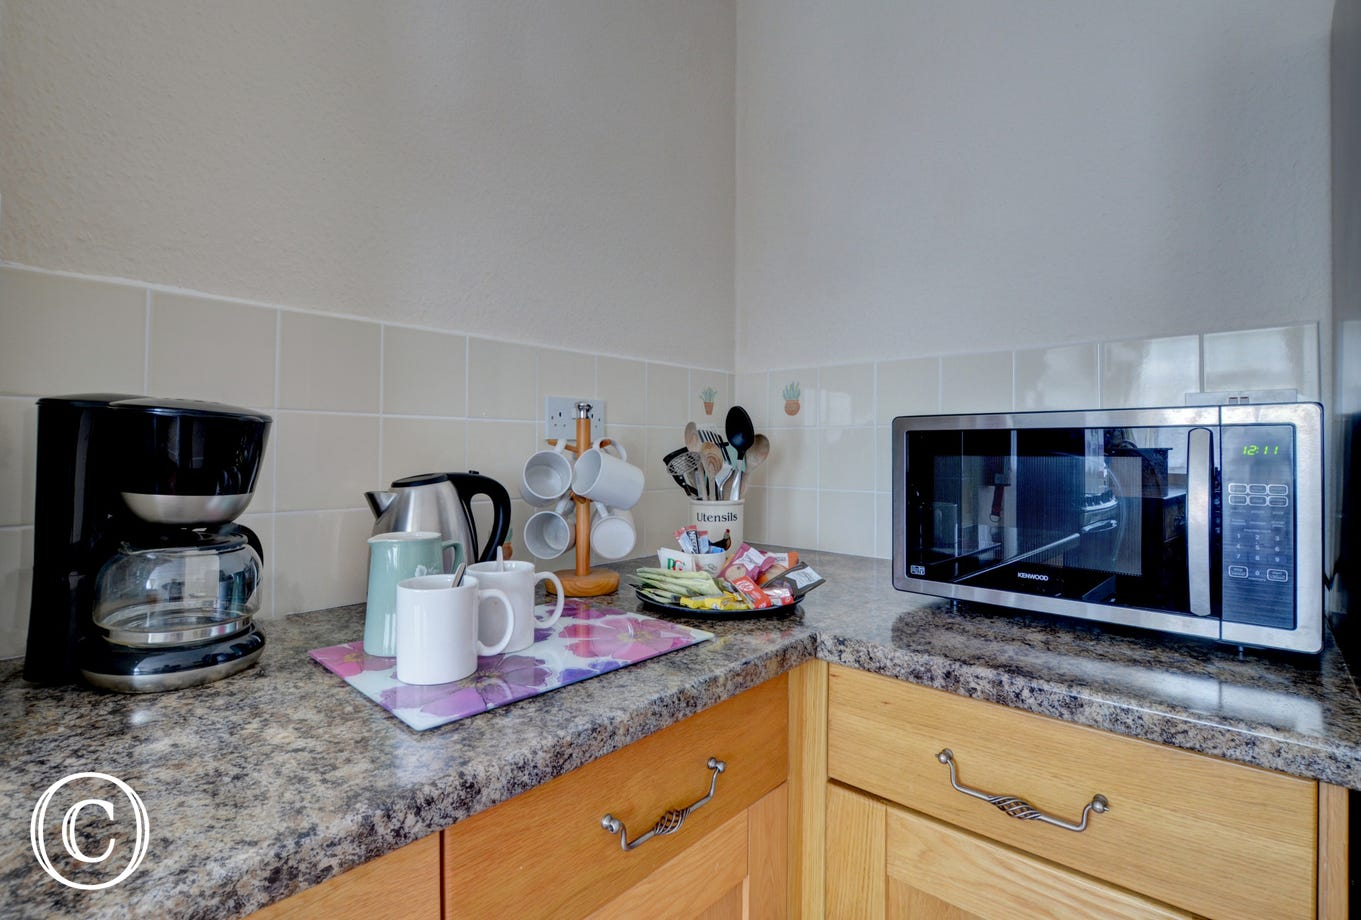 Coffee machine and microwave available in the kitchen